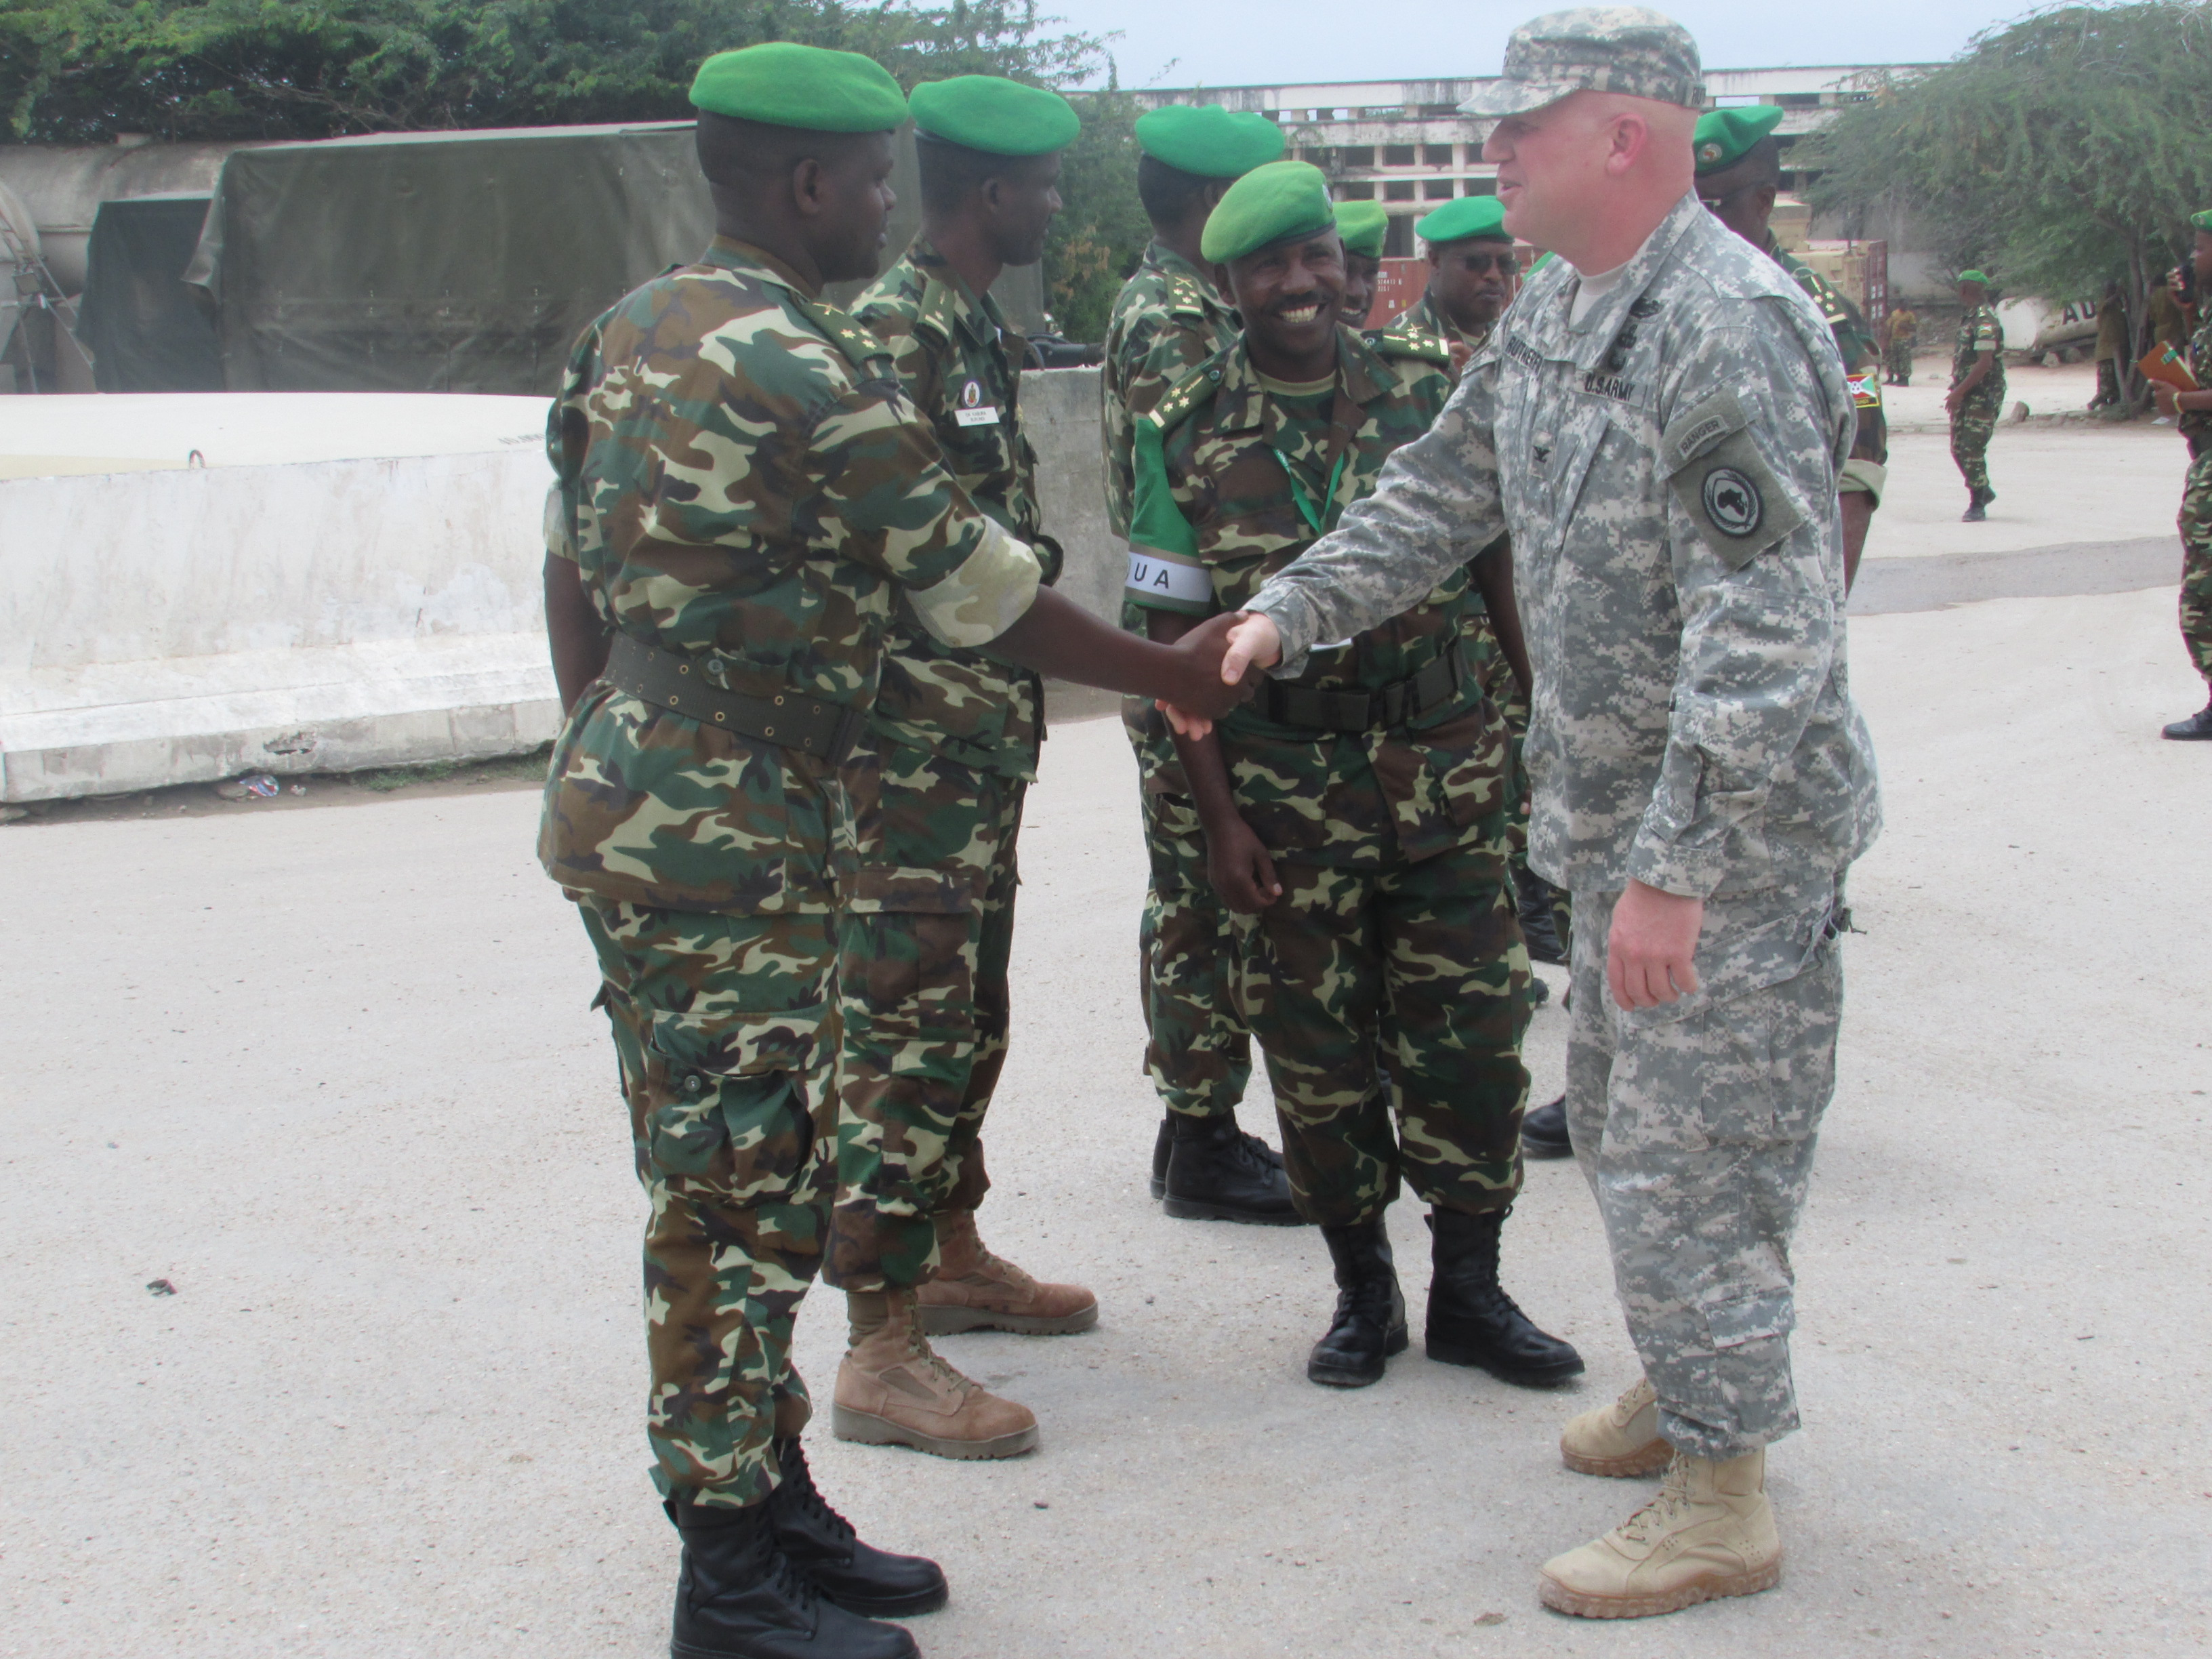 U.S. Army Col. Wilson Rutherford, right, U.S. Military Coordination Cell Mogadisu, meets with senior members of the Burundi National Defense Forces during a visit to the African Union Mission in Somalia Sector 5 Headquarters located in northern Mogadishu. Burundi is a major troop contributor to AMISOM, whose principal aim is to provide support for the Federal Government of Somalia in its efforts to stabilize the country and foster political dialogue and reconciliation. (BNDF Courtesy Photo)